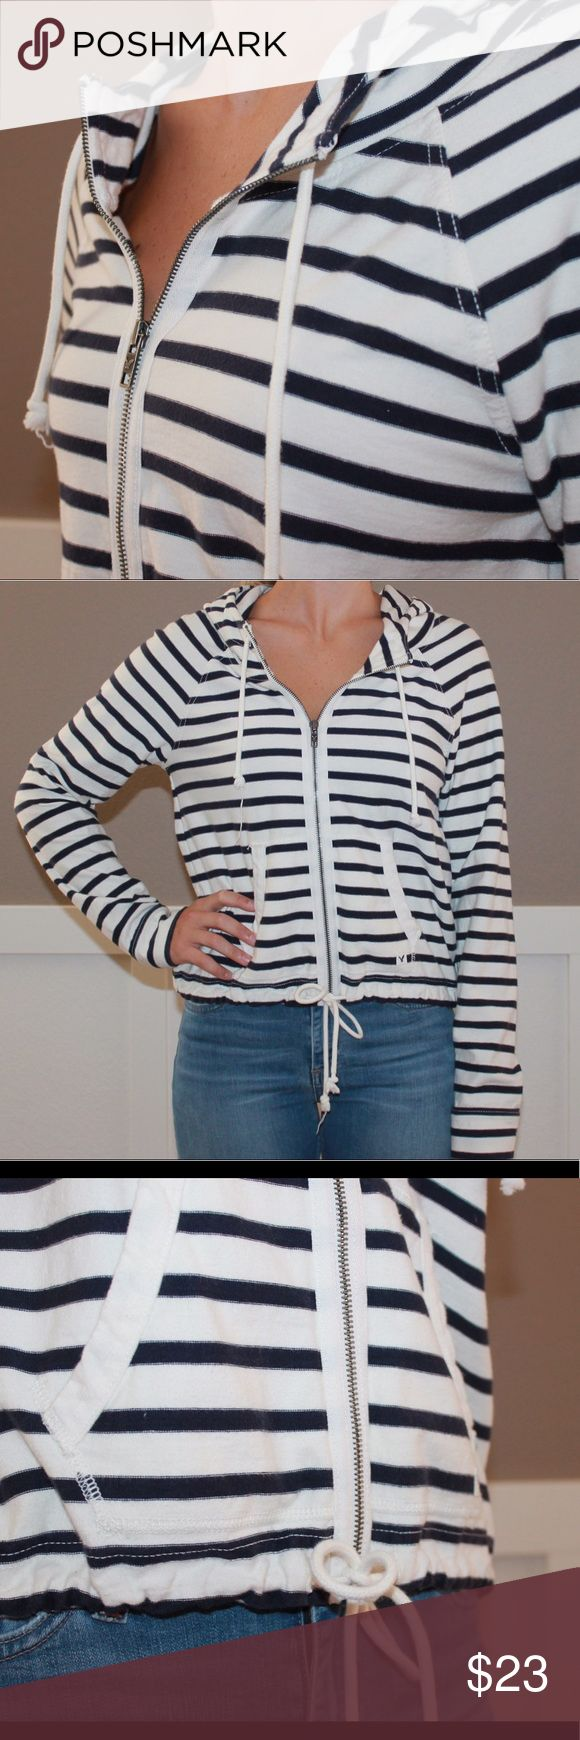 Striped Blue & White Zip-Up Great zip-up for spring/summer/fall. Nautical looking. American Eagle Outfitters Tops Sweatshirts & Hoodies